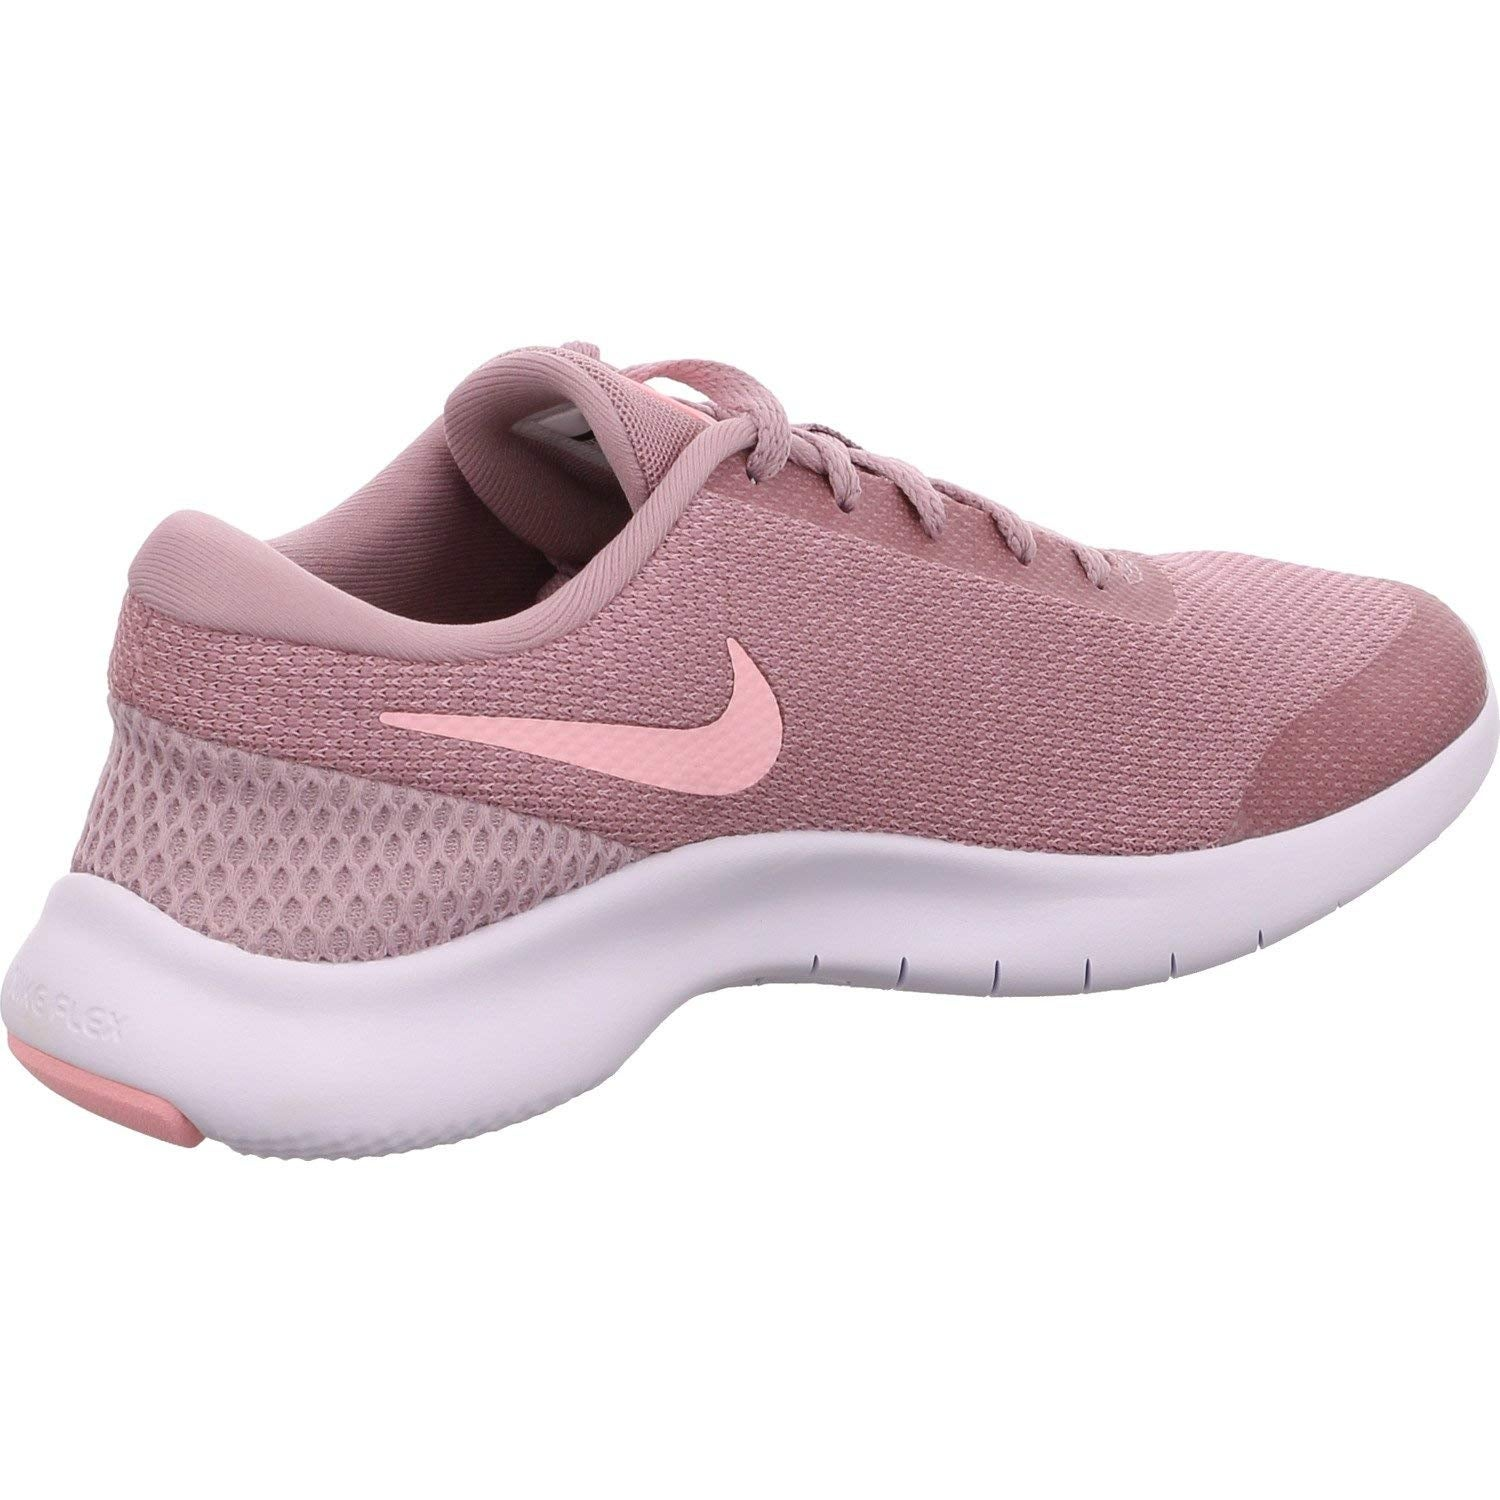 9ad8d81d1d3b1 Shop Nike Womens Wmns Flex Experience Rn 7 Rose Arctic Punch Sunset Pulse  Size 6.5 - Free Shipping Today - Overstock - 25596616